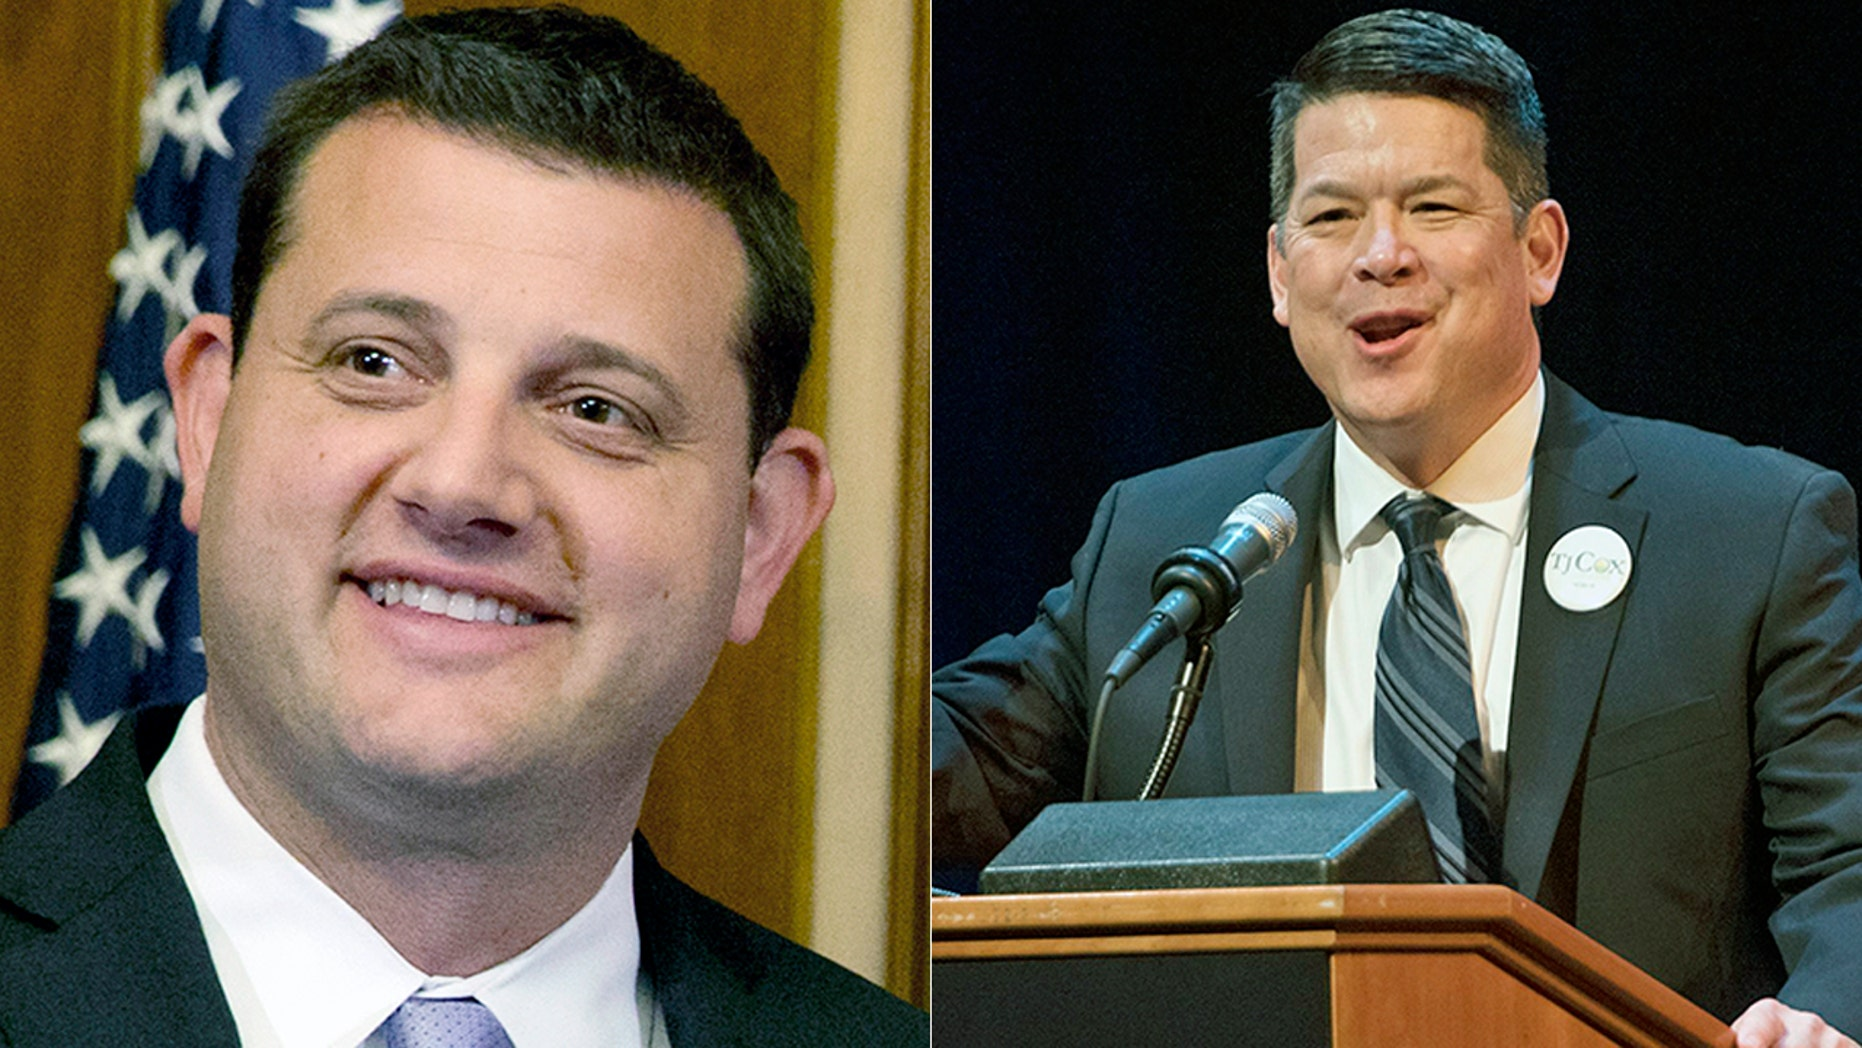 Rep. David Valadao, R-Calif., left, was defeated by Democrat T.J. Cox.(AP Photo/Jacquelyn Martin, File)